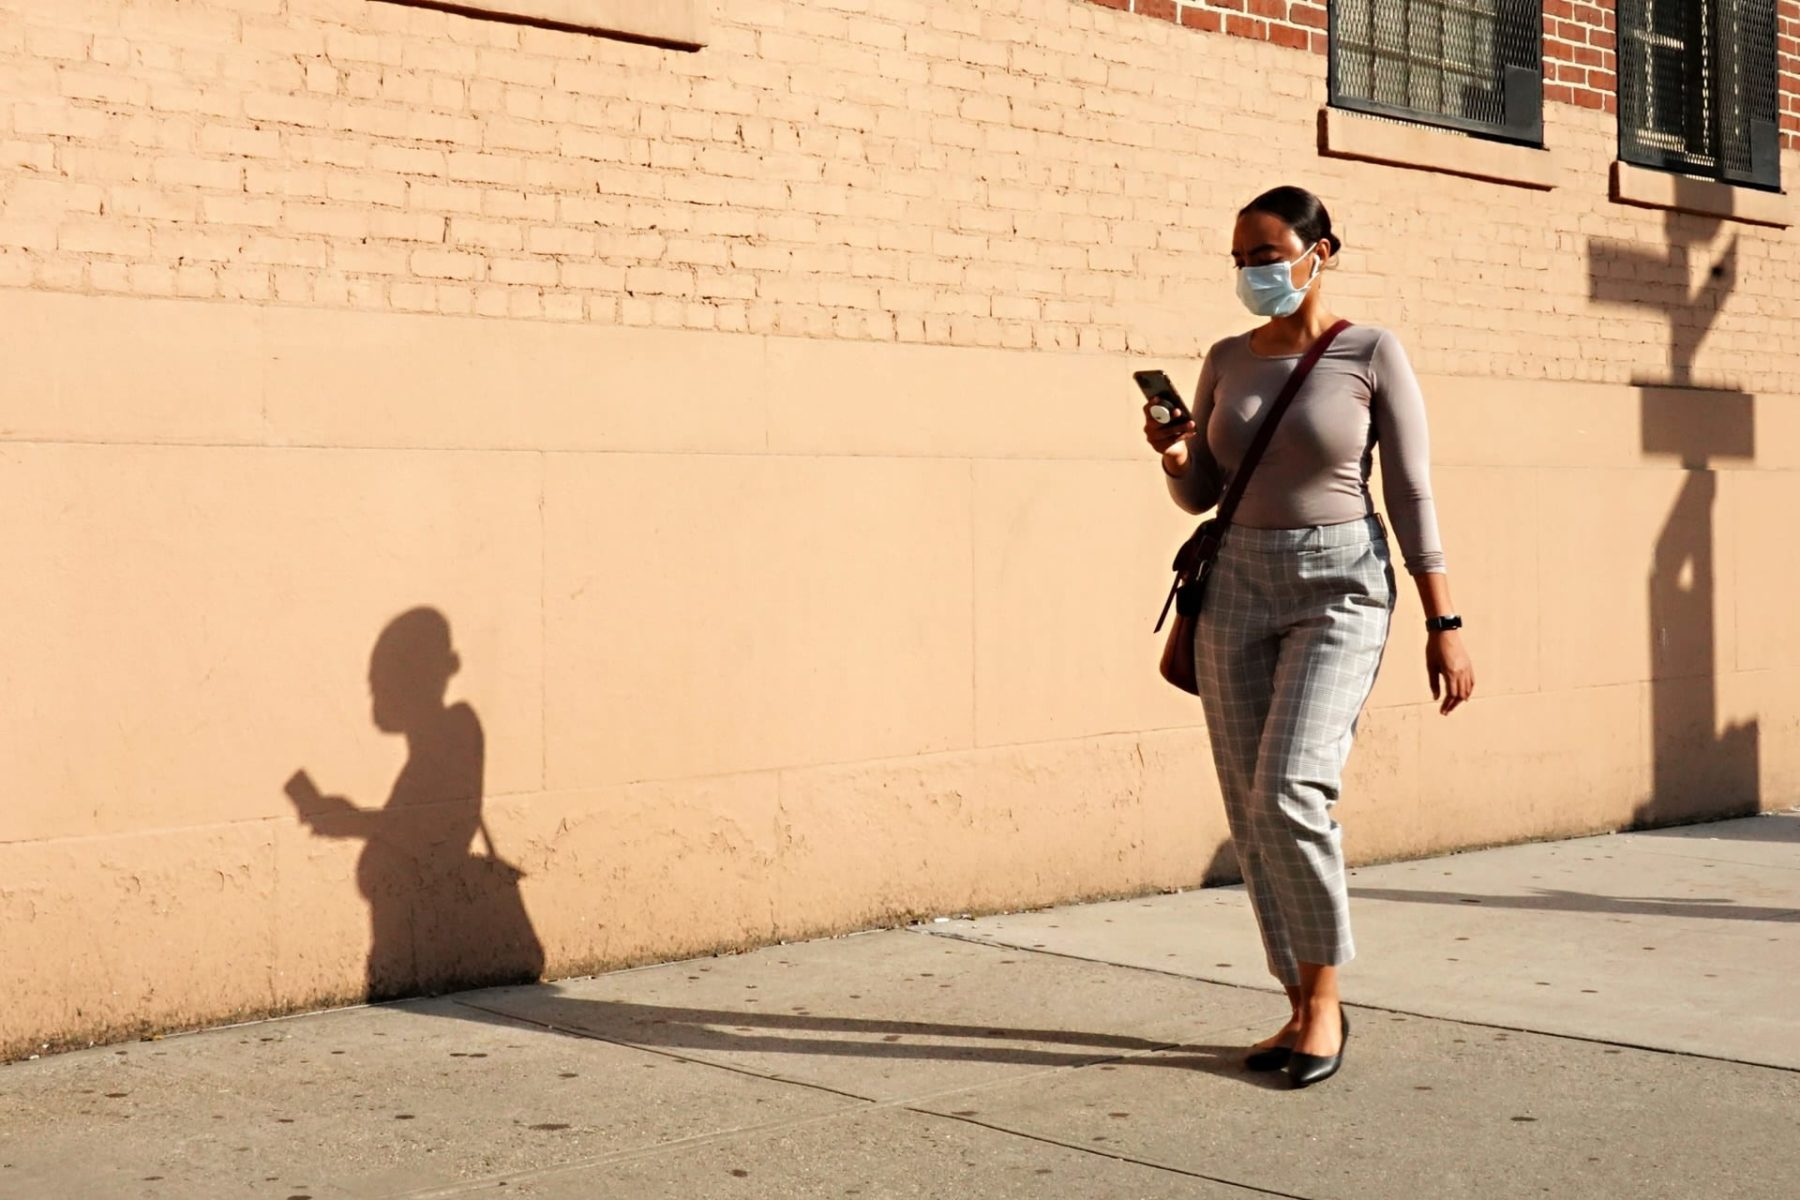 A woman walking down a street in NYC with a mask on looking at her phone.